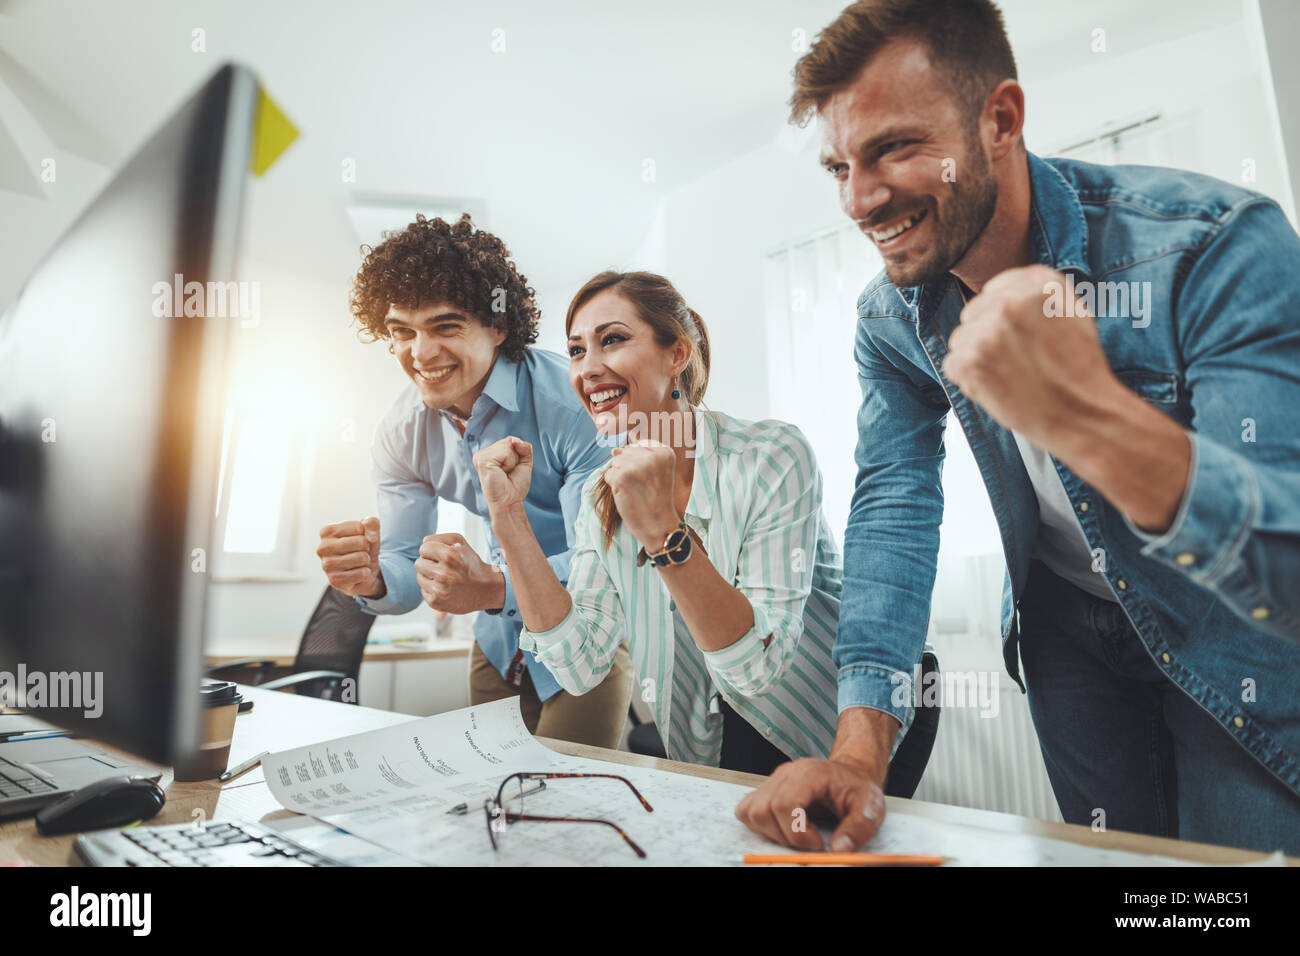 Young Successful Business People Celebrating Success While Working On A New Project In The Casual Office Stock Photo Alamy